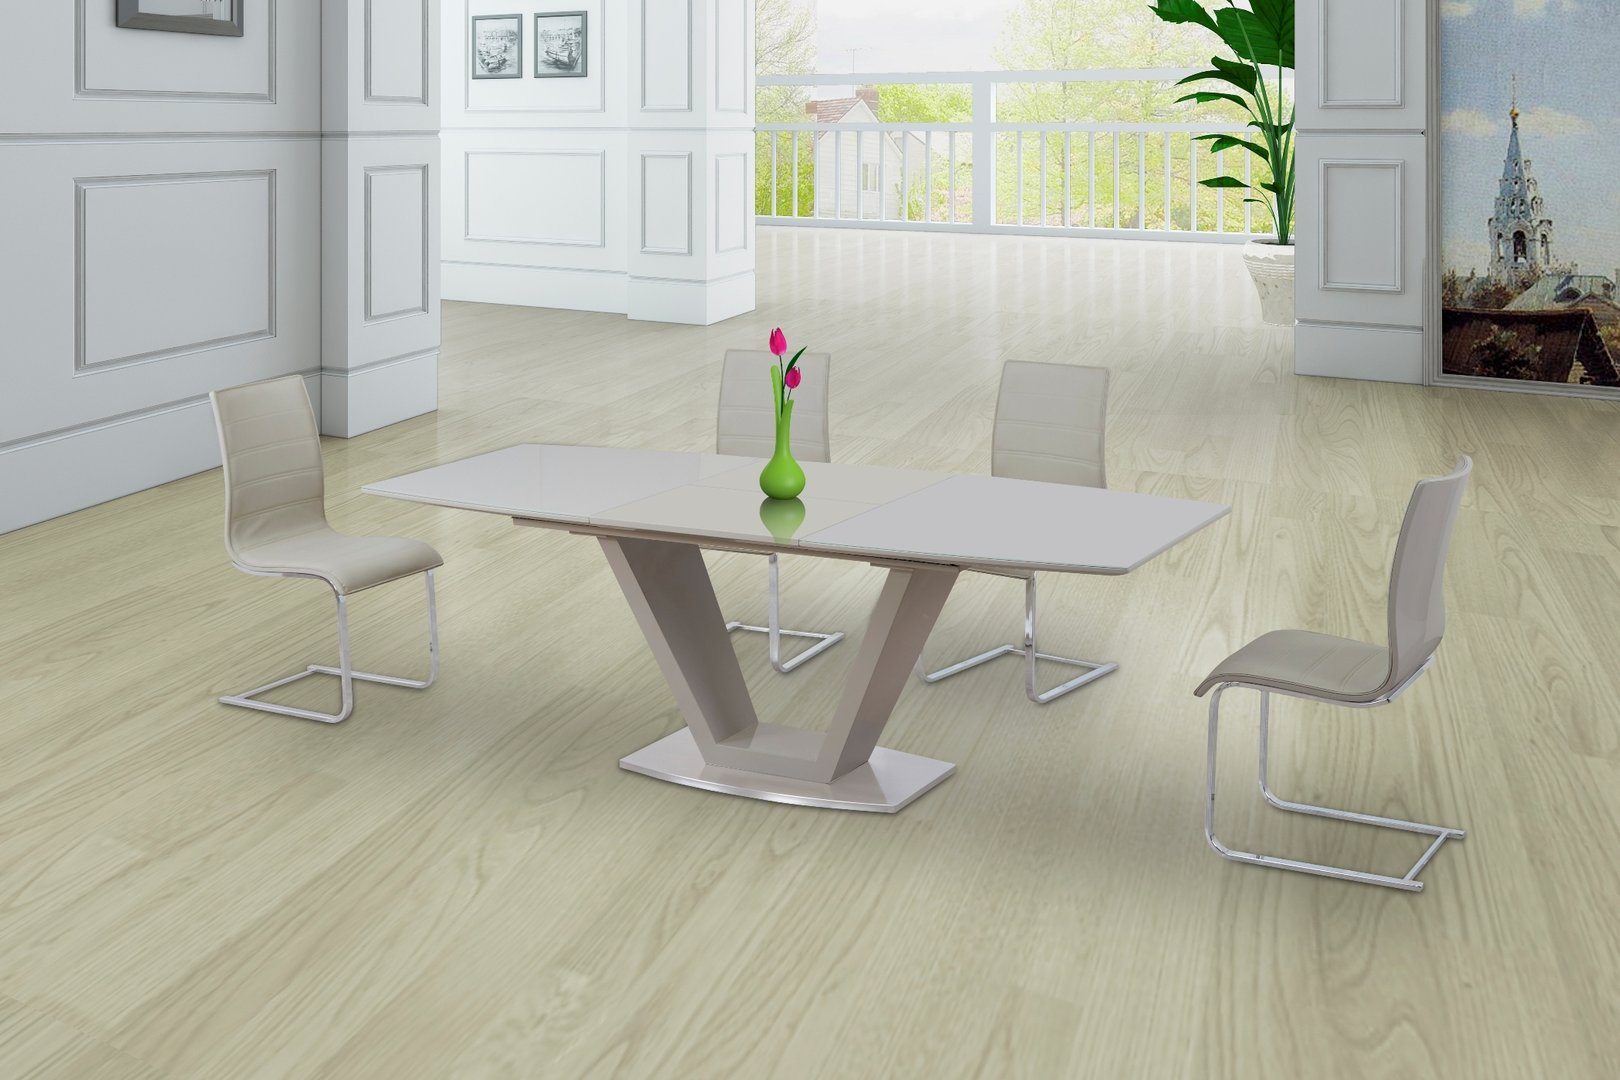 Modern Dining Room Sets For 8